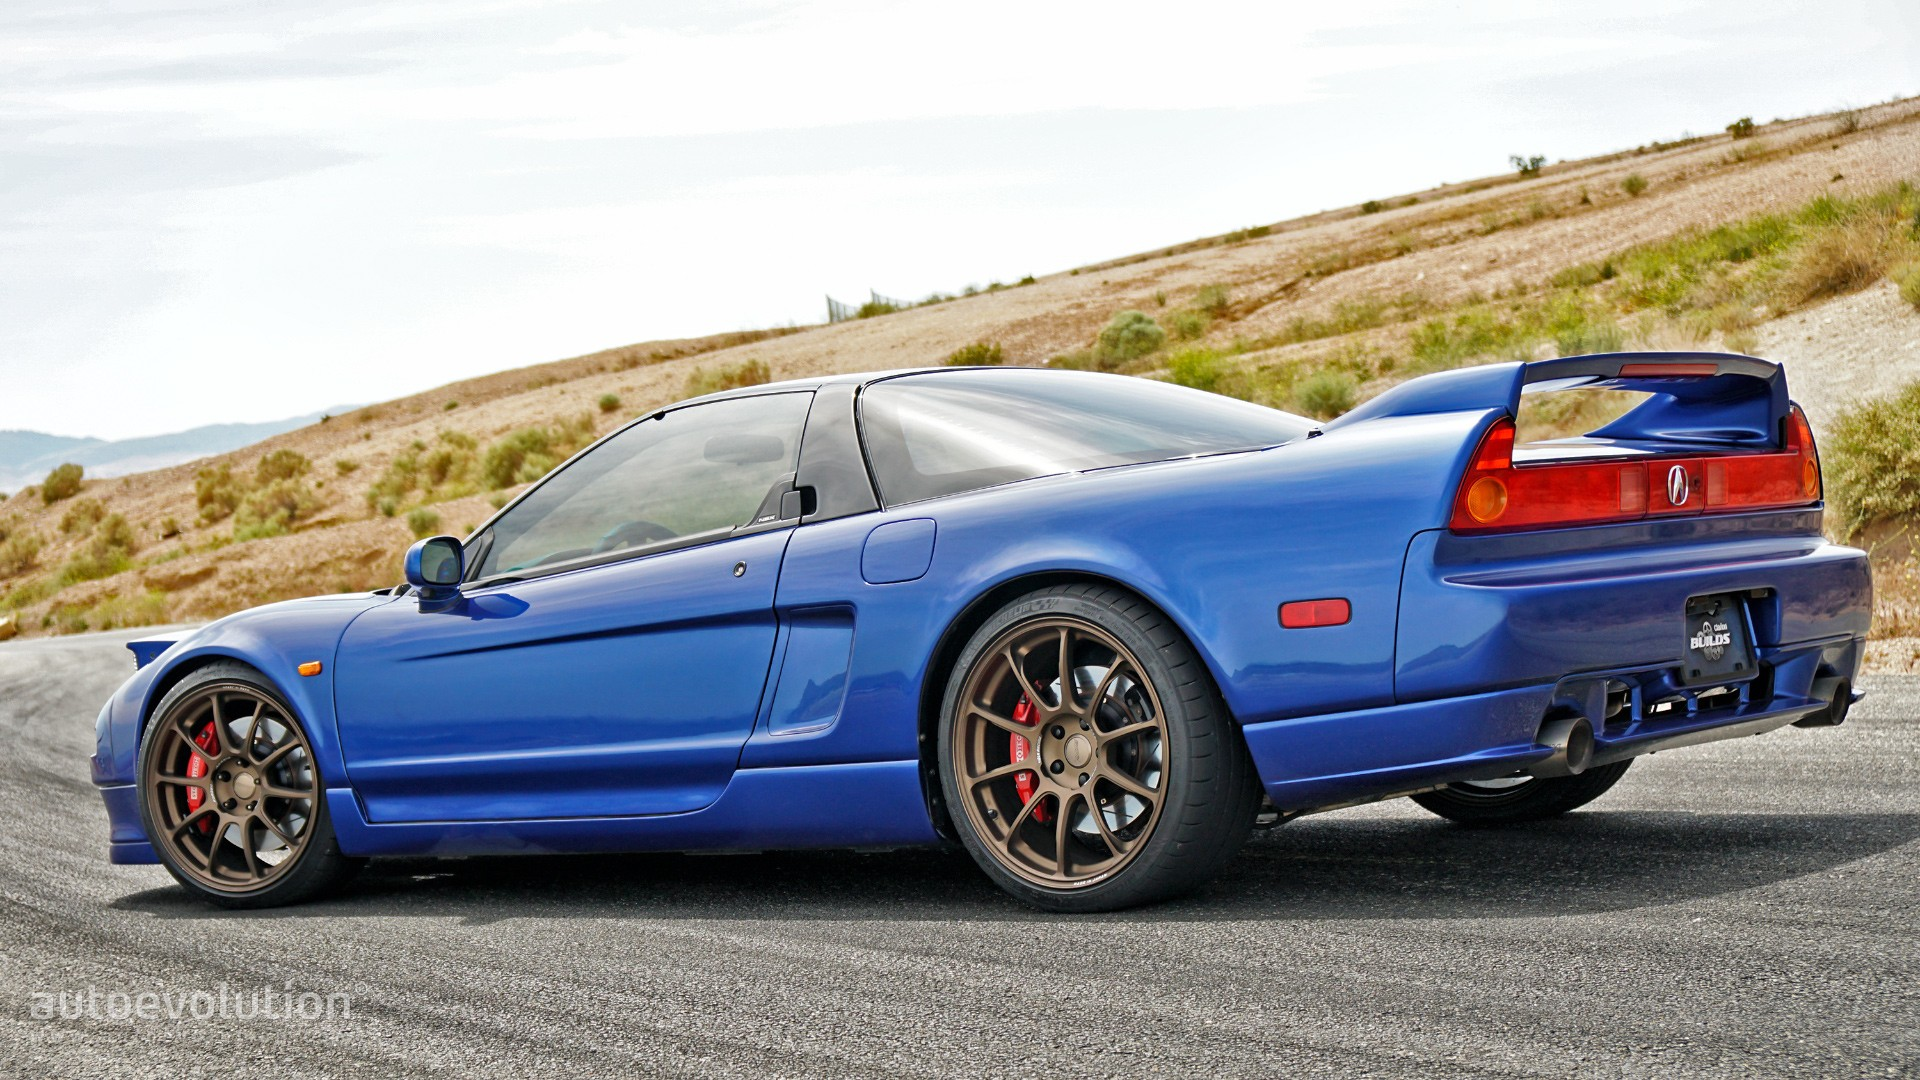 Clarion Builds Resurrects and Improves a 1991 Acura NSX - autoevolution